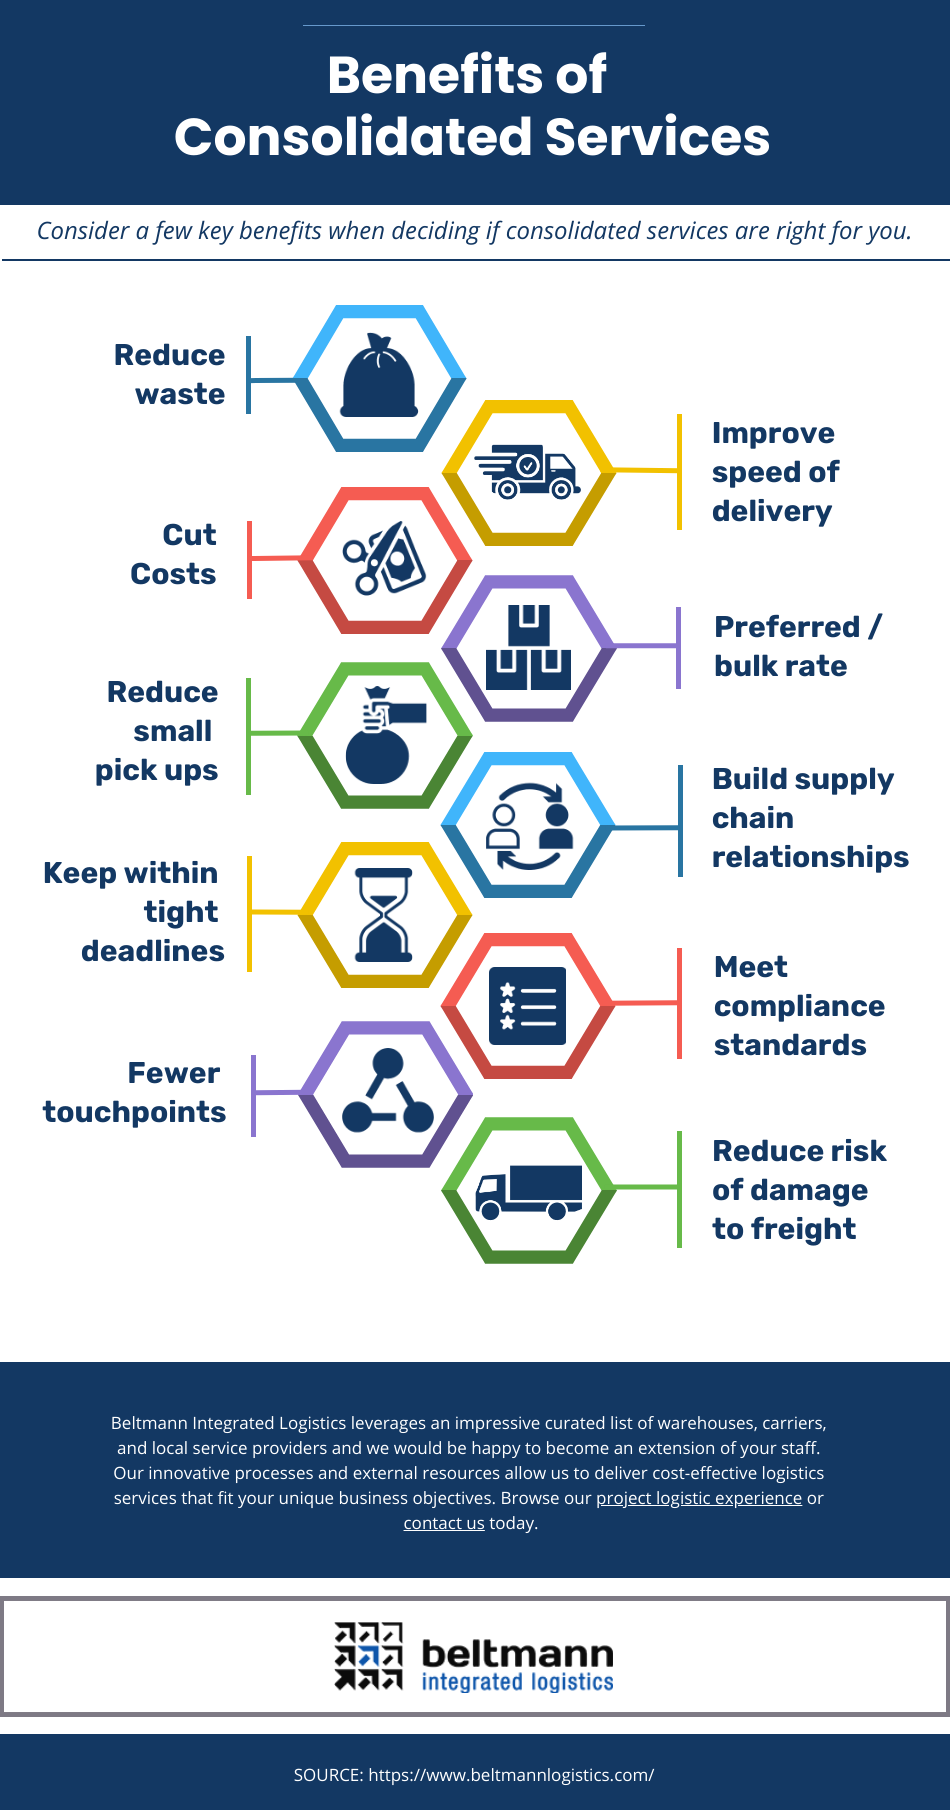 Benefits of Consolidated Services Infographic